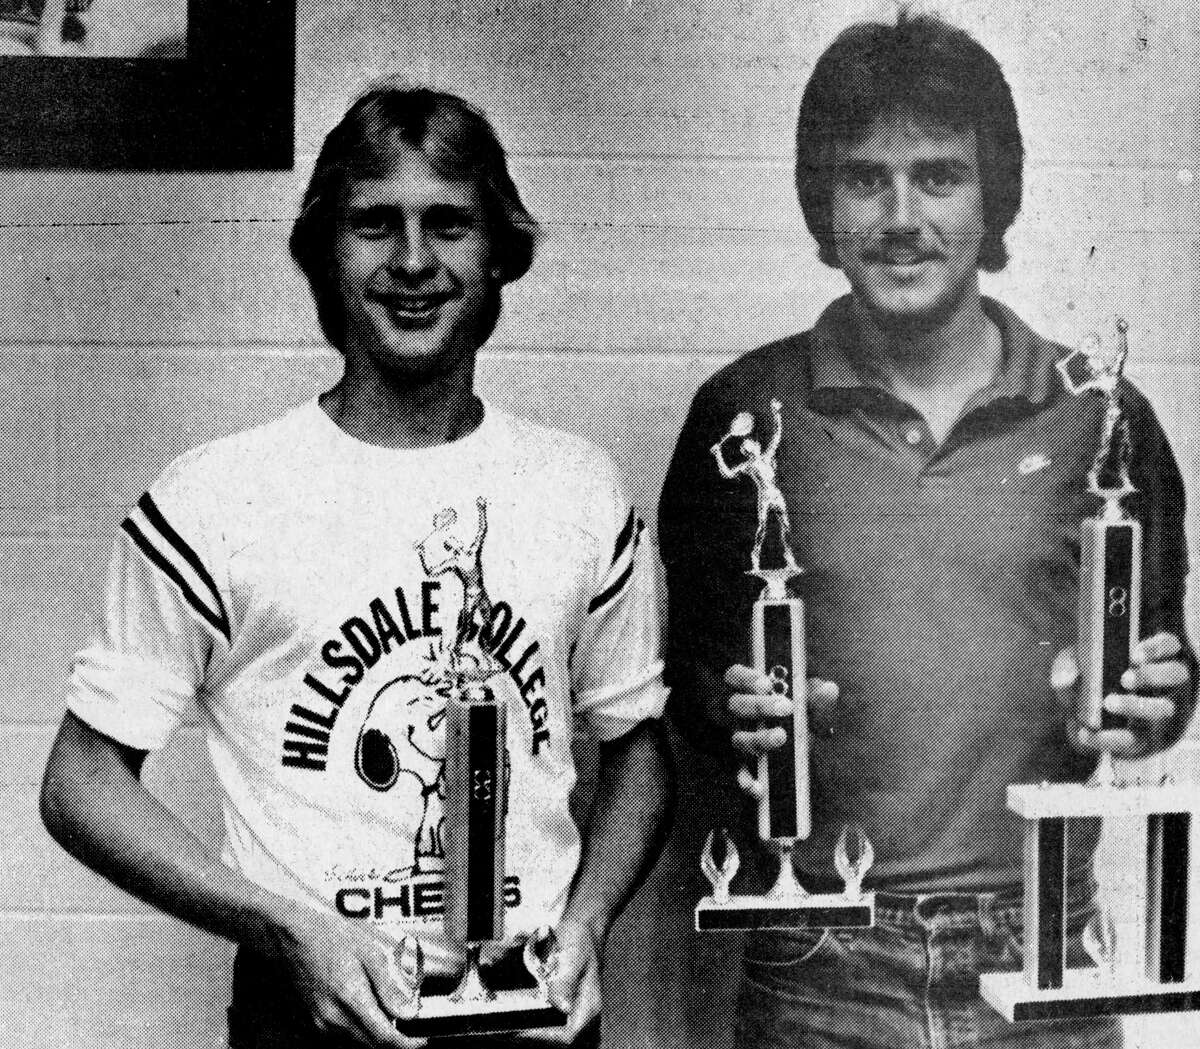 (From left) Scott Solberg and Mark Mrozik teamed up to win the double division of the Manistee Recreation Association Closed County Tennis Tournament. Mrozik also won the singles championship. The photo was published in the News Advocate on July 31, 1981. (Manistee County Historical Museum photo)